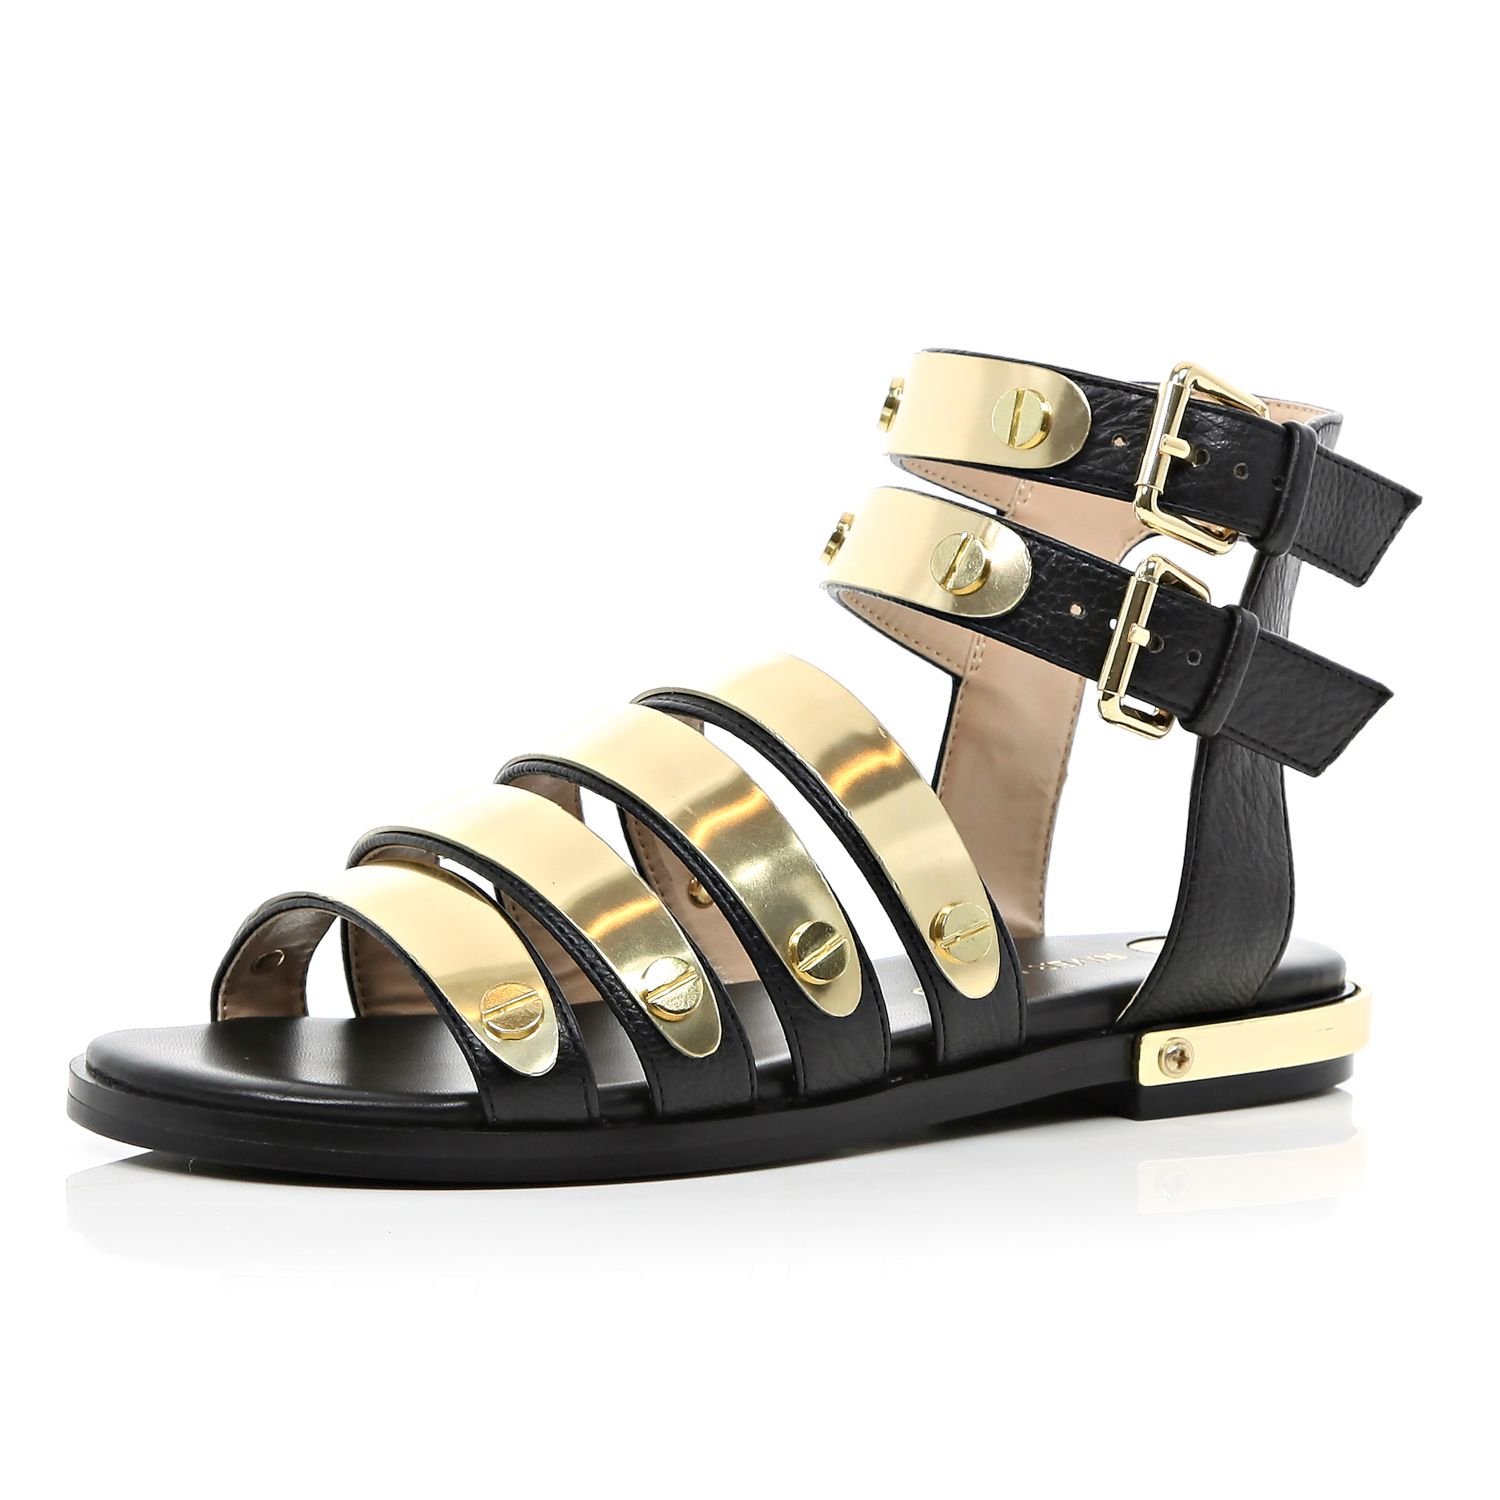 23842c5c679e River Island Black Metal Bar Strap Gladiator Sandals in Yellow - Lyst